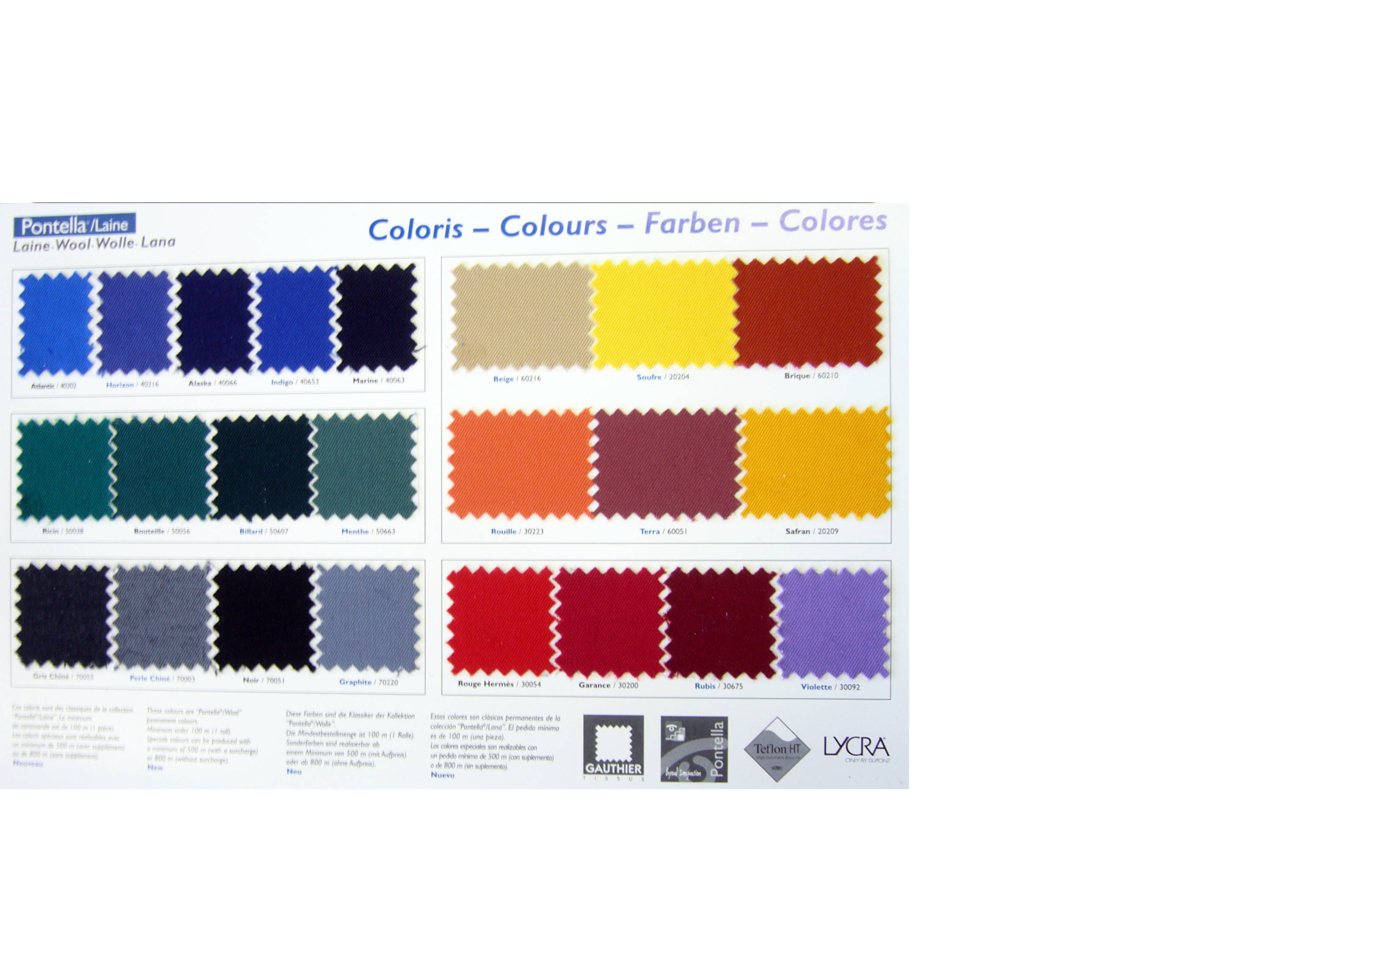 Colour range for the pontella wool fabric line